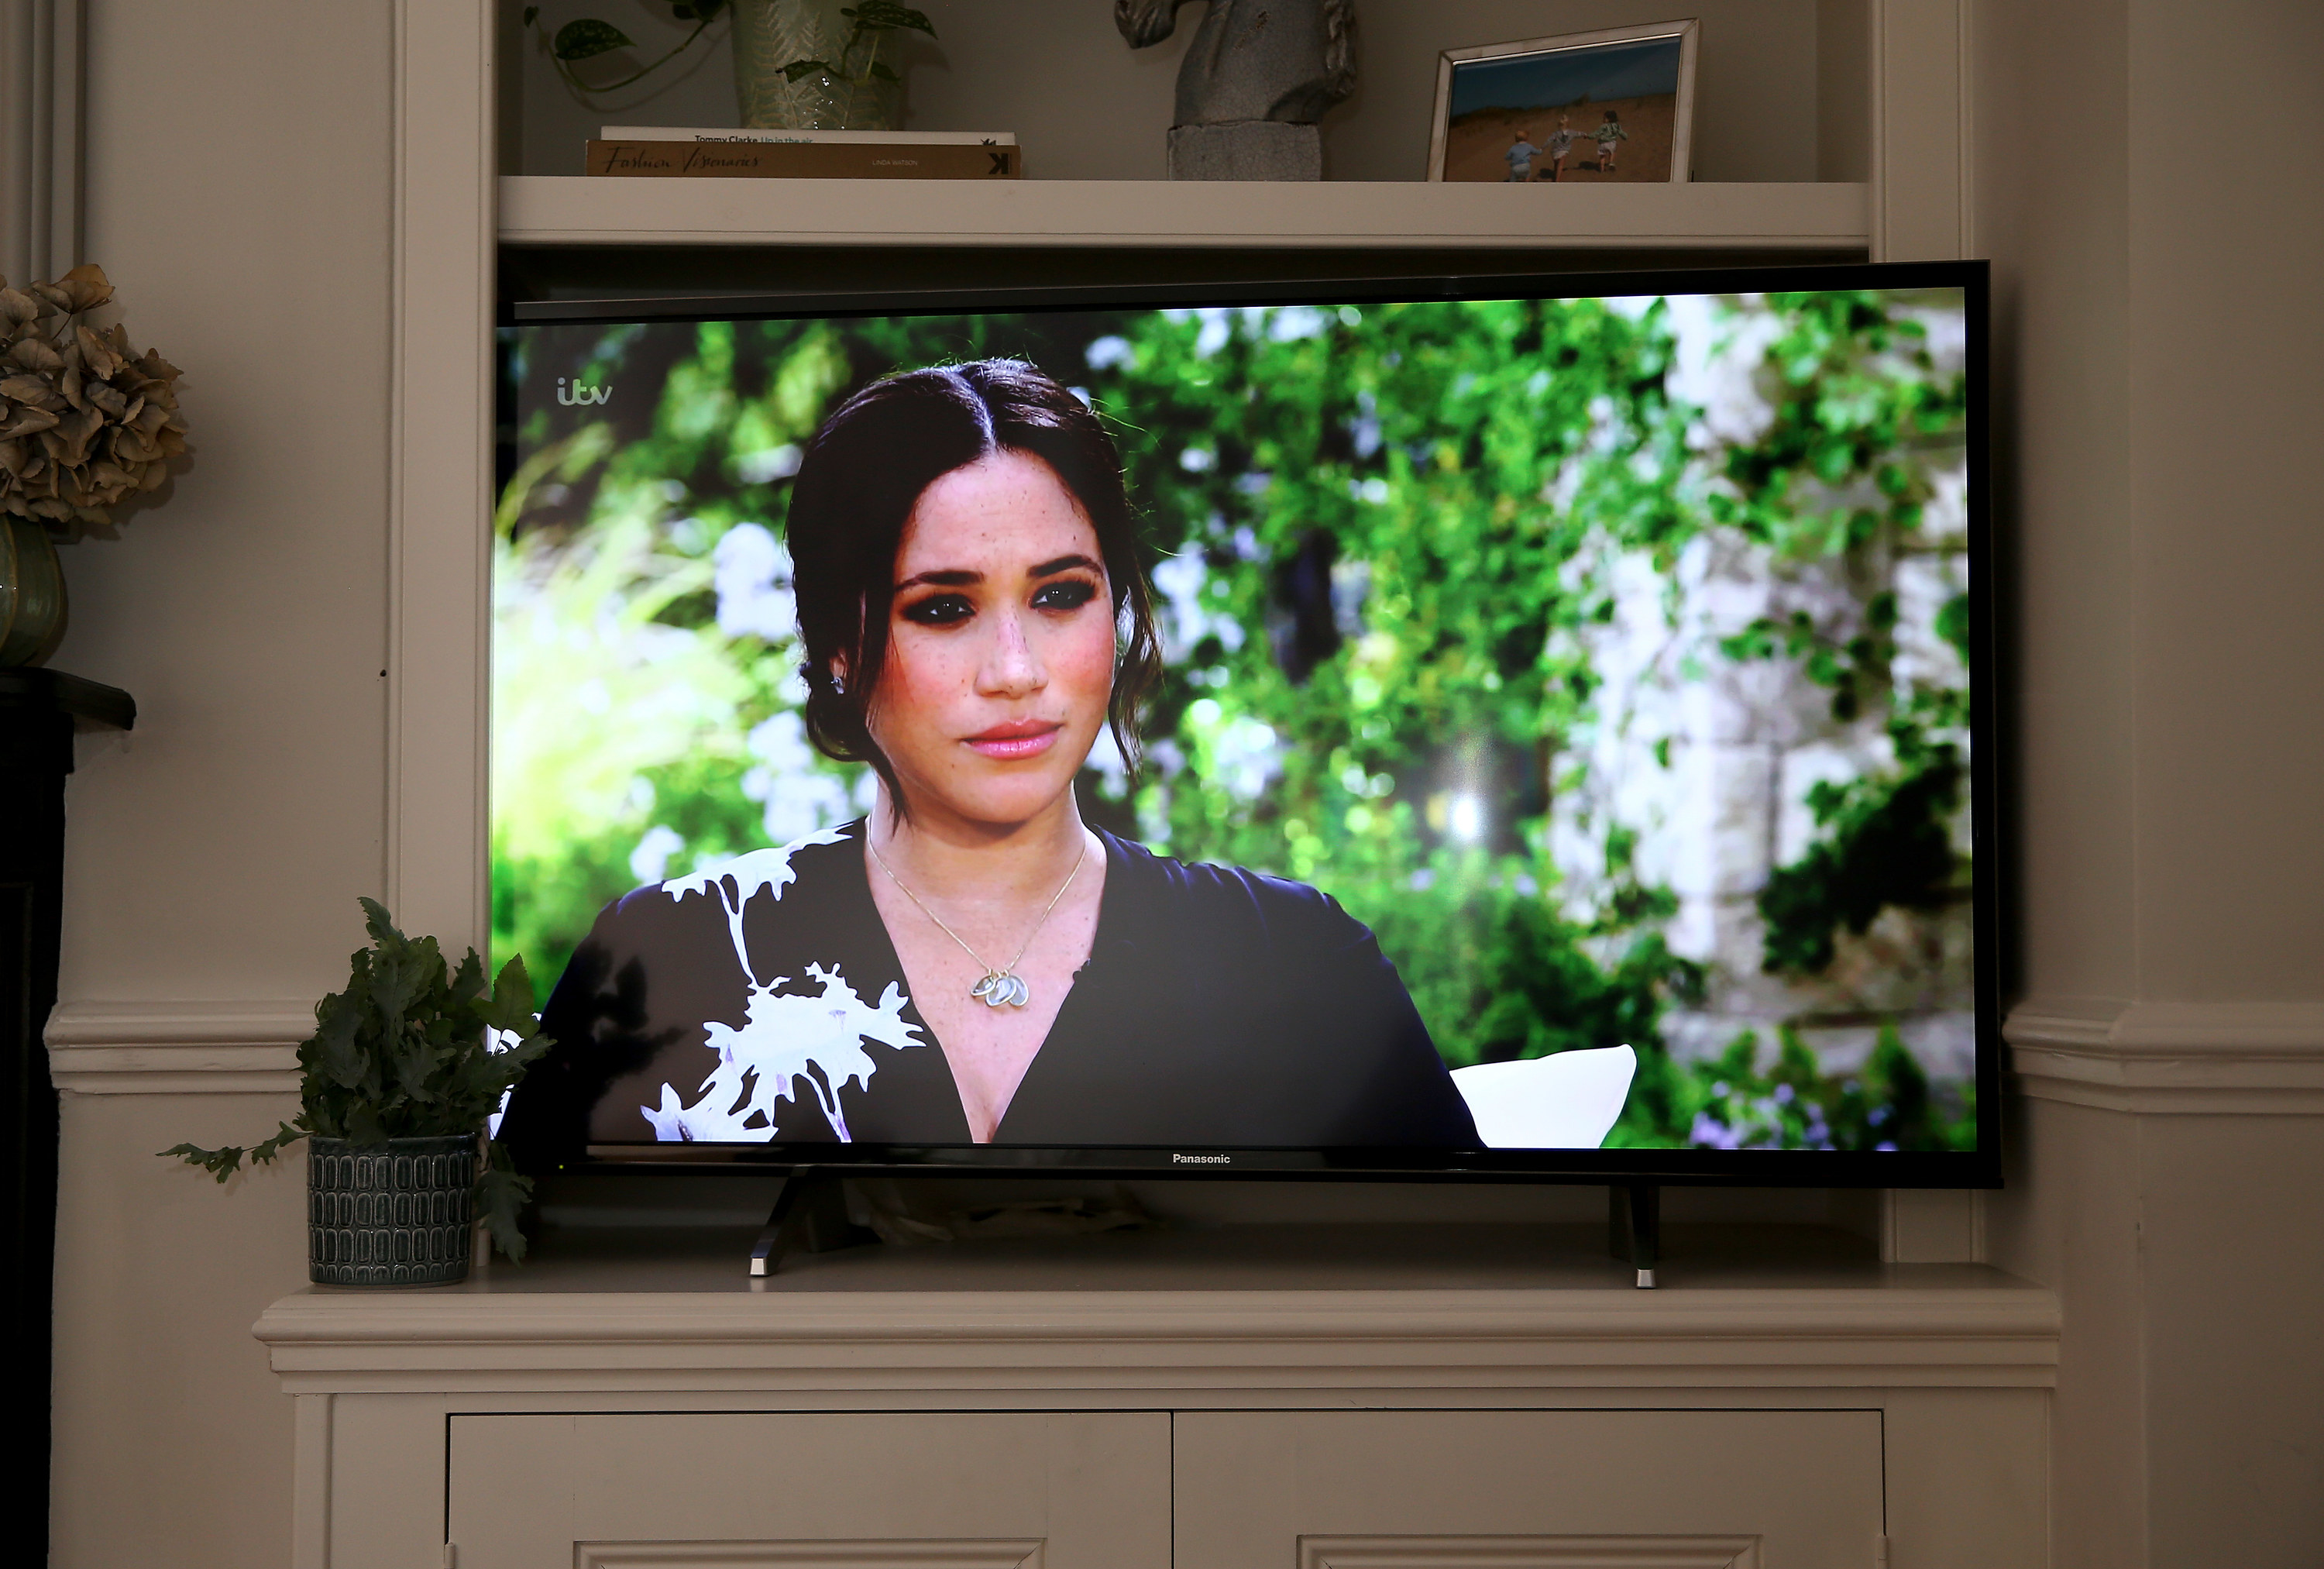 Meghan shown on a TV screen during her interview